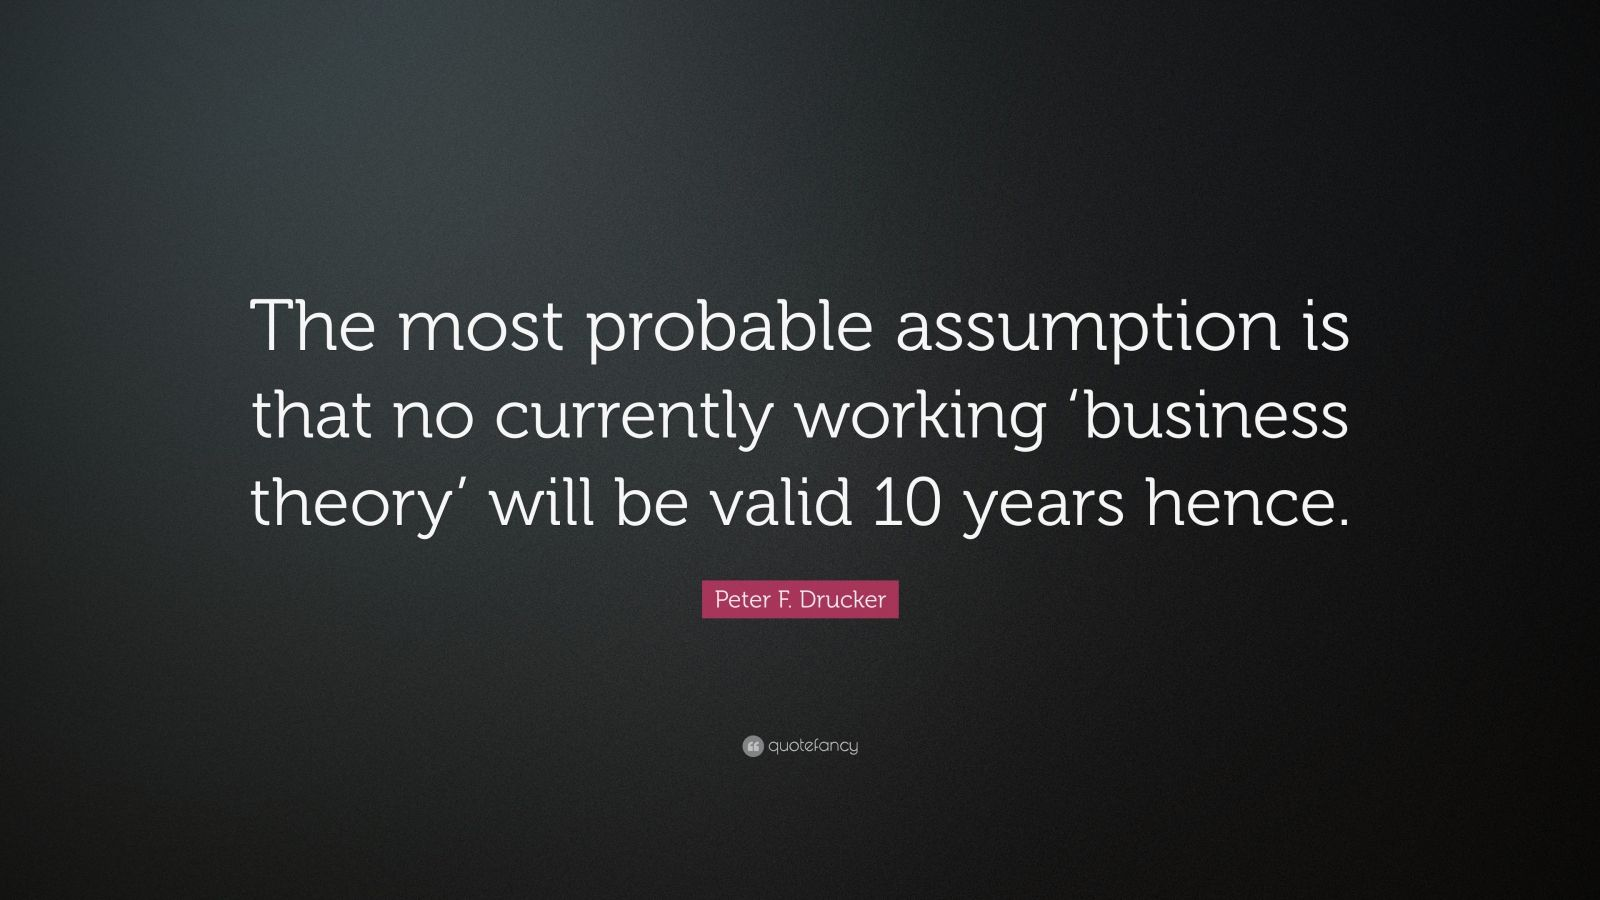 """Peter F. Drucker Quote: """"The most probable assumption is that no currently working 'business theory' will be valid 10 years hence."""""""